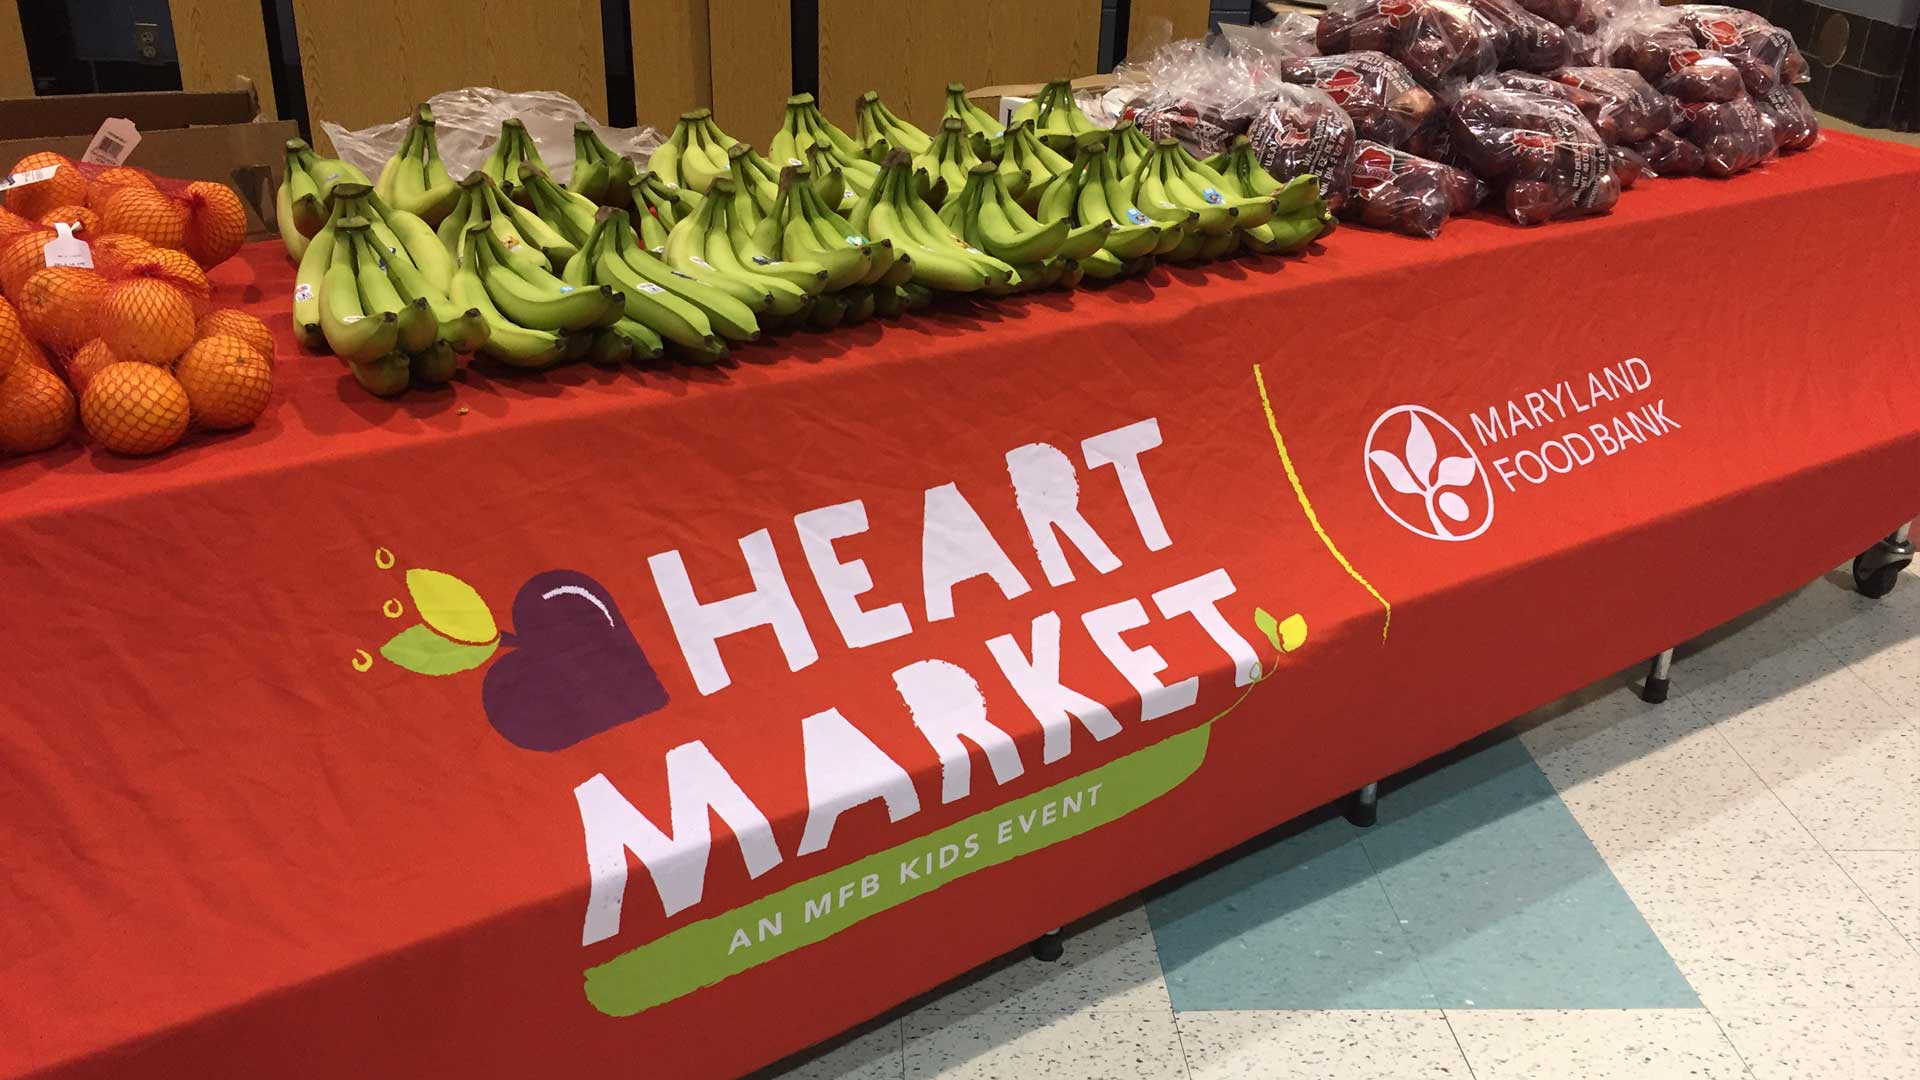 HEART Market table with fruits